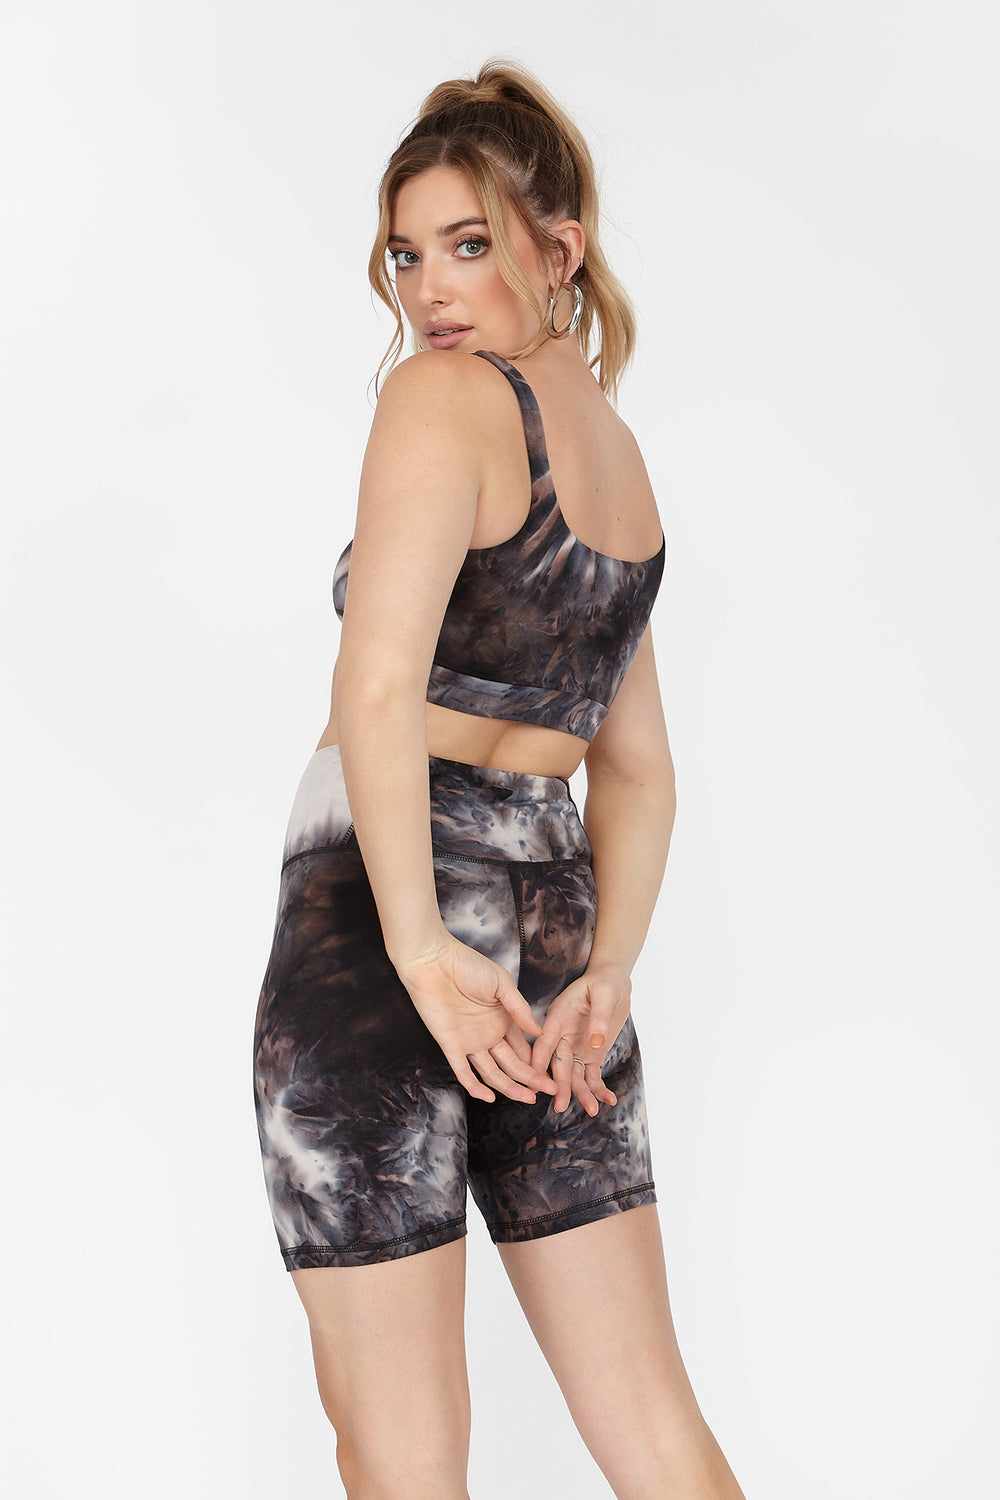 Soft High-Rise Black Tie-Dye Biker Short Black with White